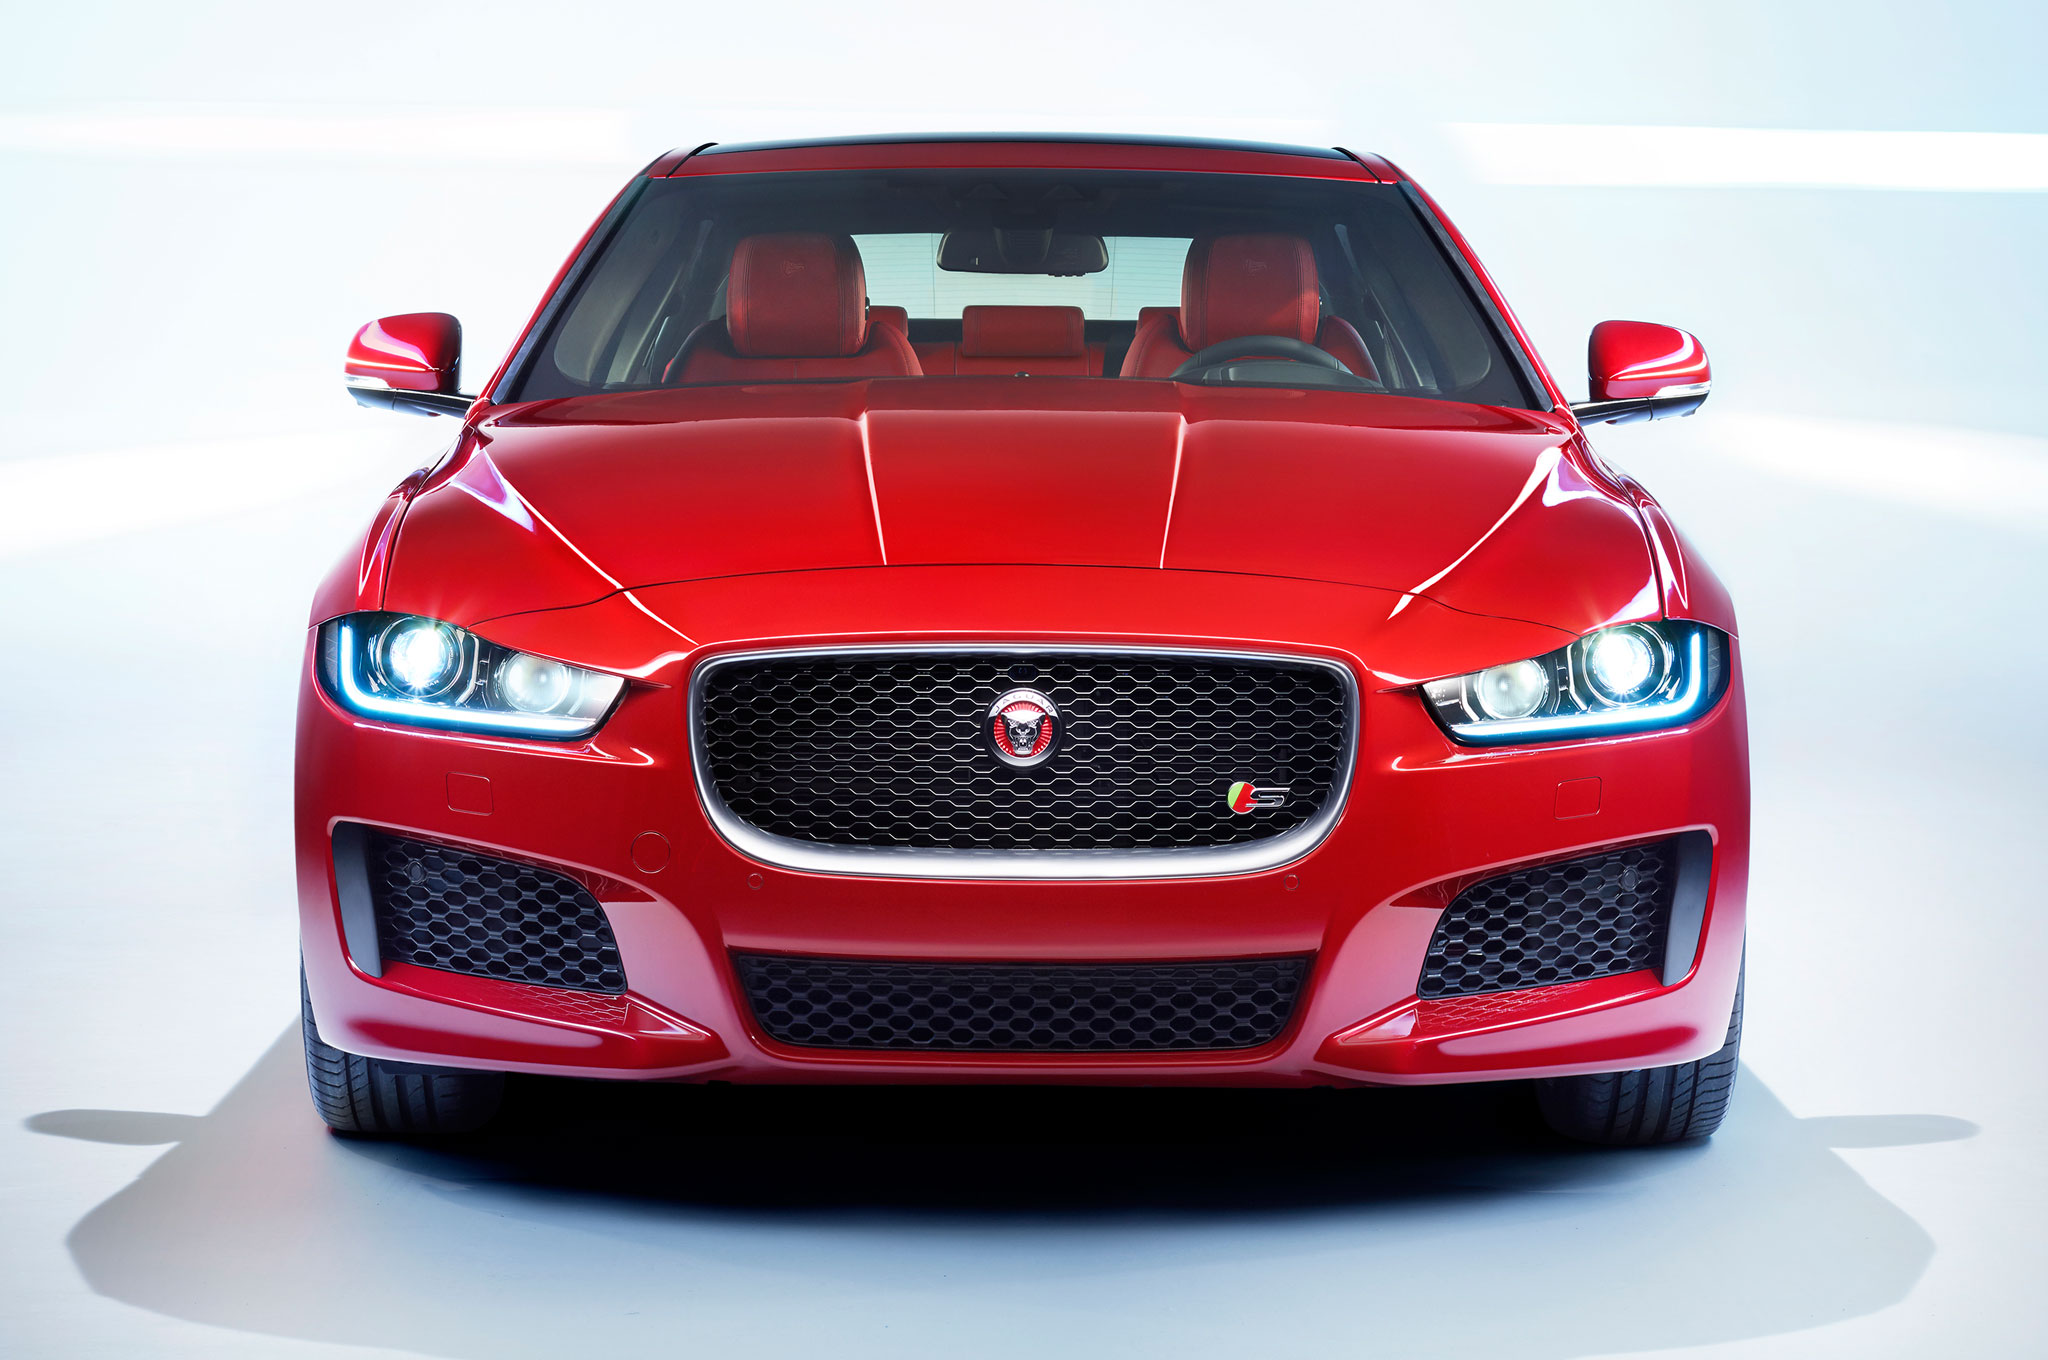 2016 Jaguar Xe Facelift Front Photo (View 10 of 12)